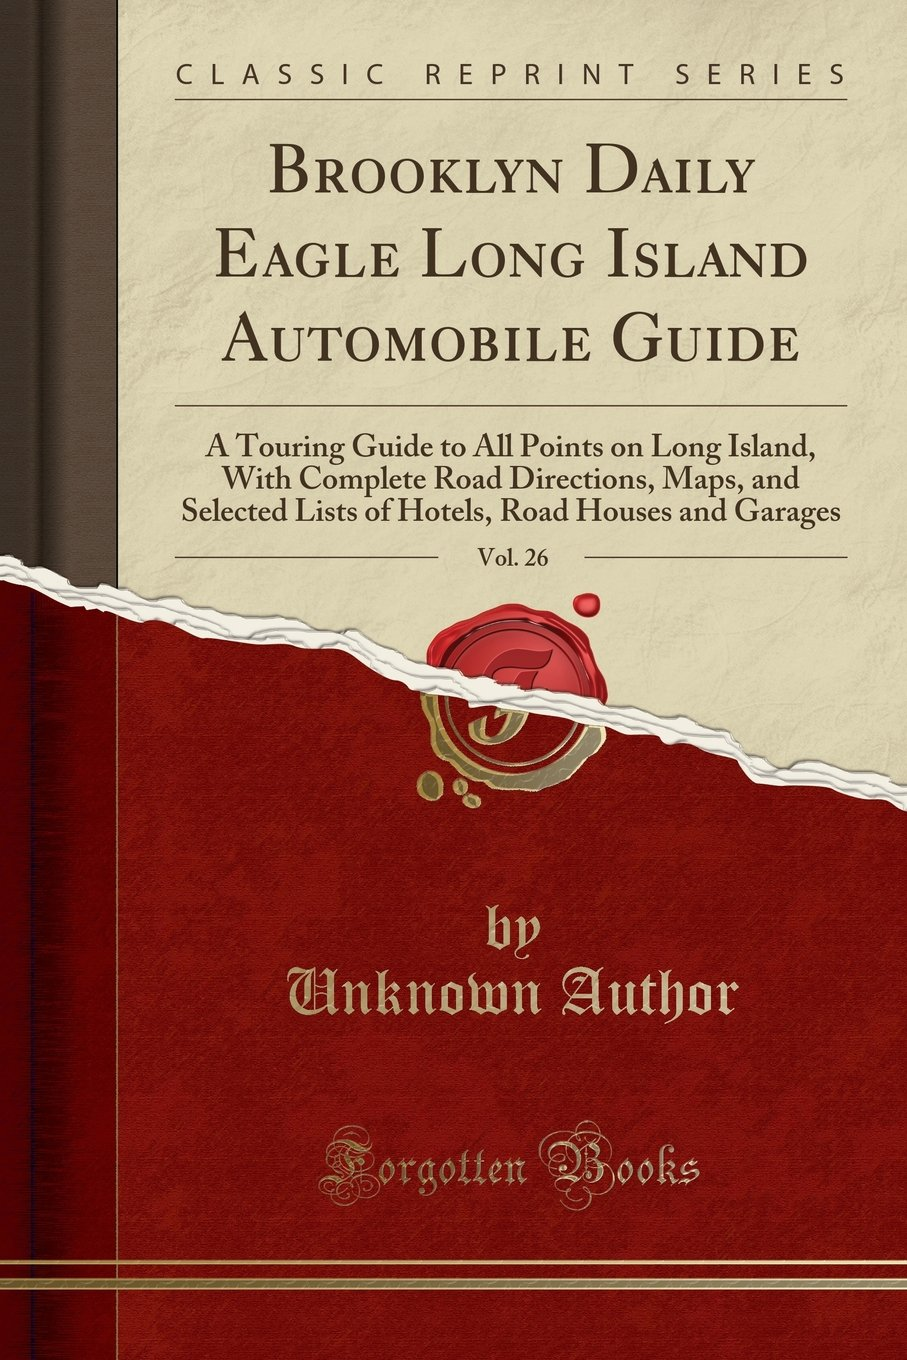 Download Brooklyn Daily Eagle Long Island Automobile Guide, Vol. 26: A Touring Guide to All Points on Long Island, With Complete Road Directions, Maps, and ... Road Houses and Garages (Classic Reprint) PDF